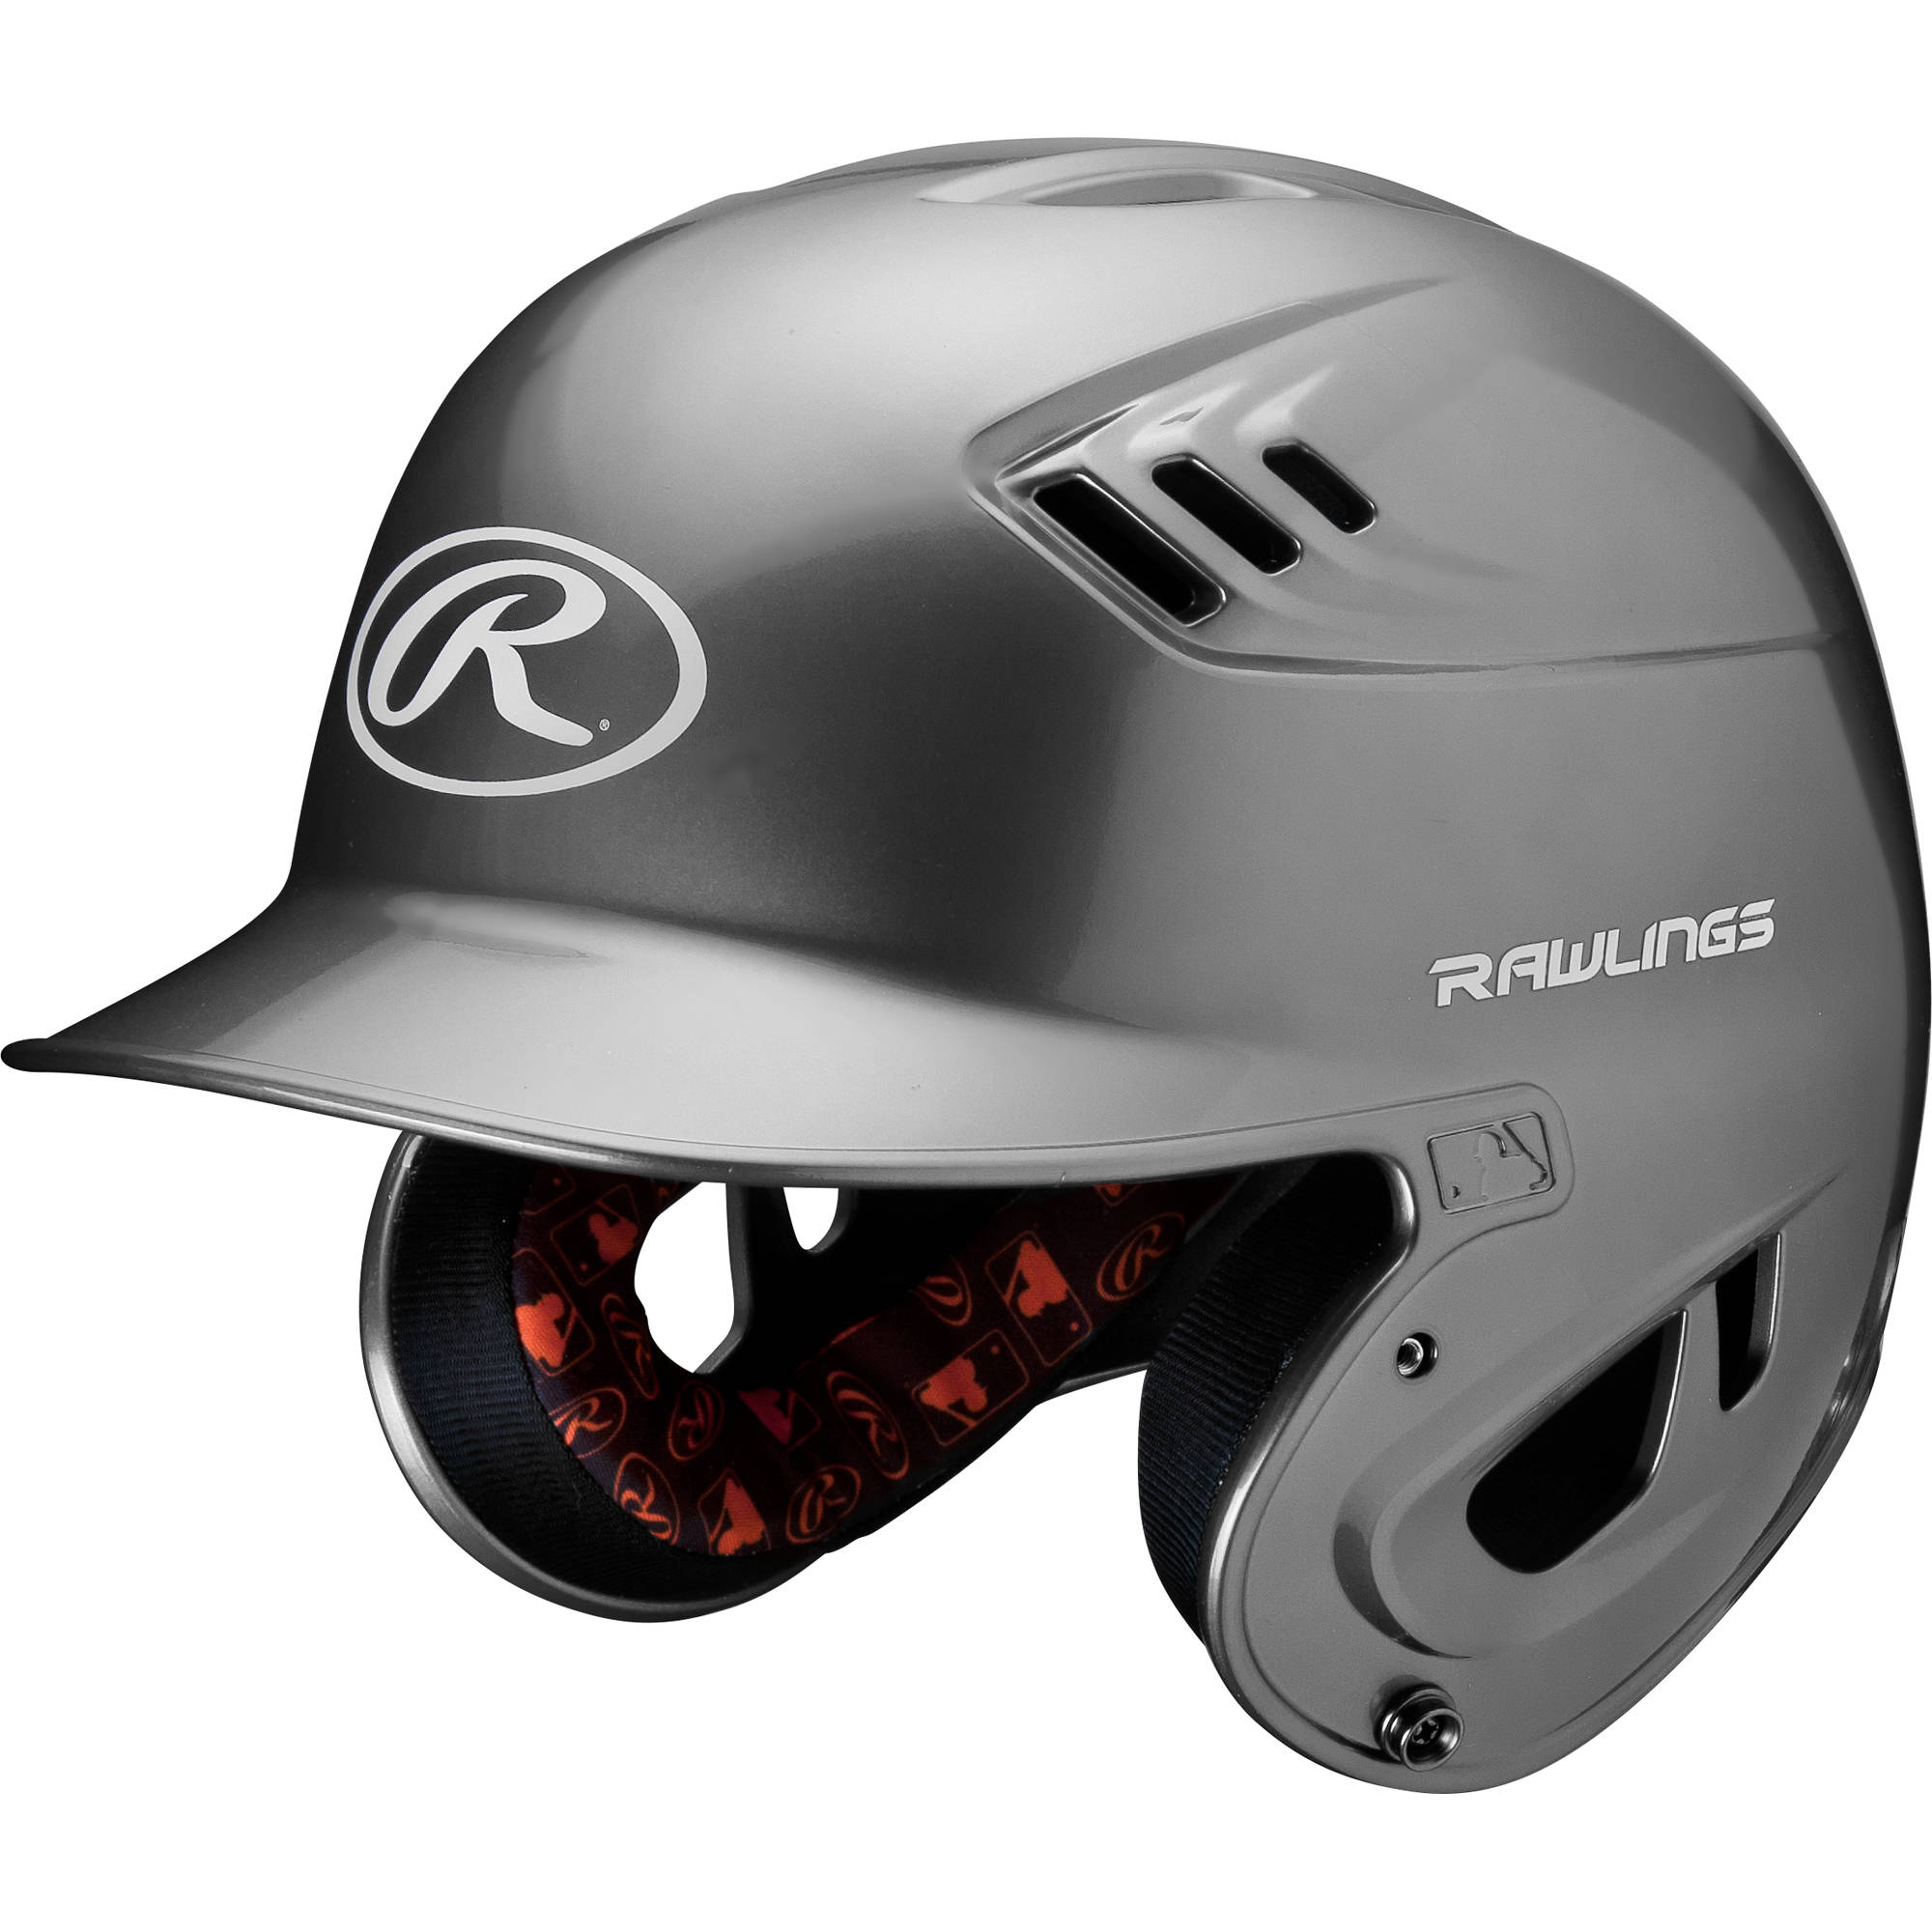 Rawlings Senior R16 Series Metallic Helmet, Silver